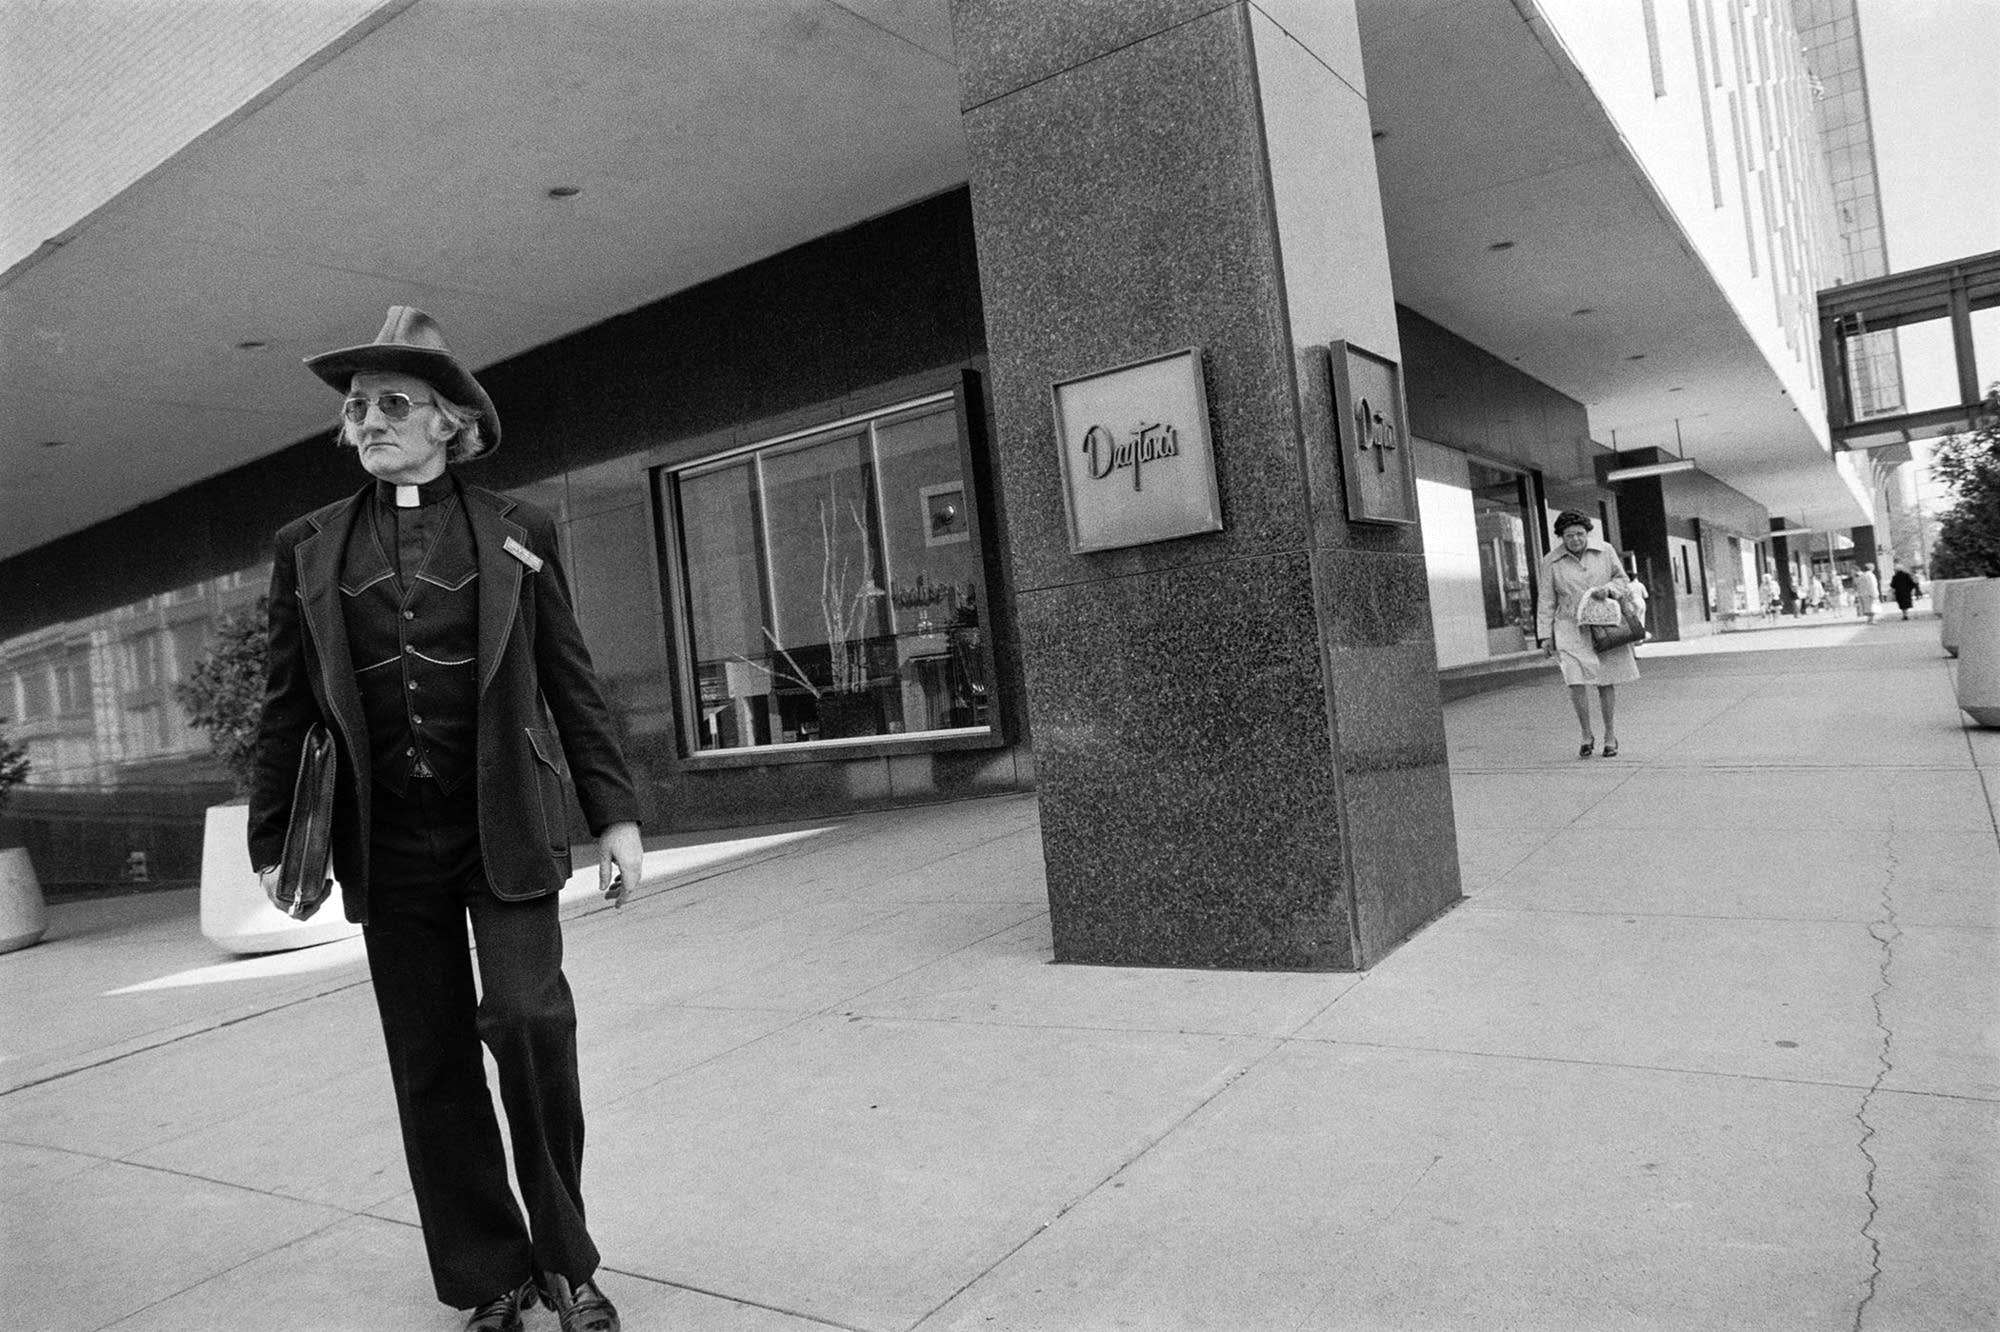 A minister stands in front of Dayton's at 7th Street and Wabasha.